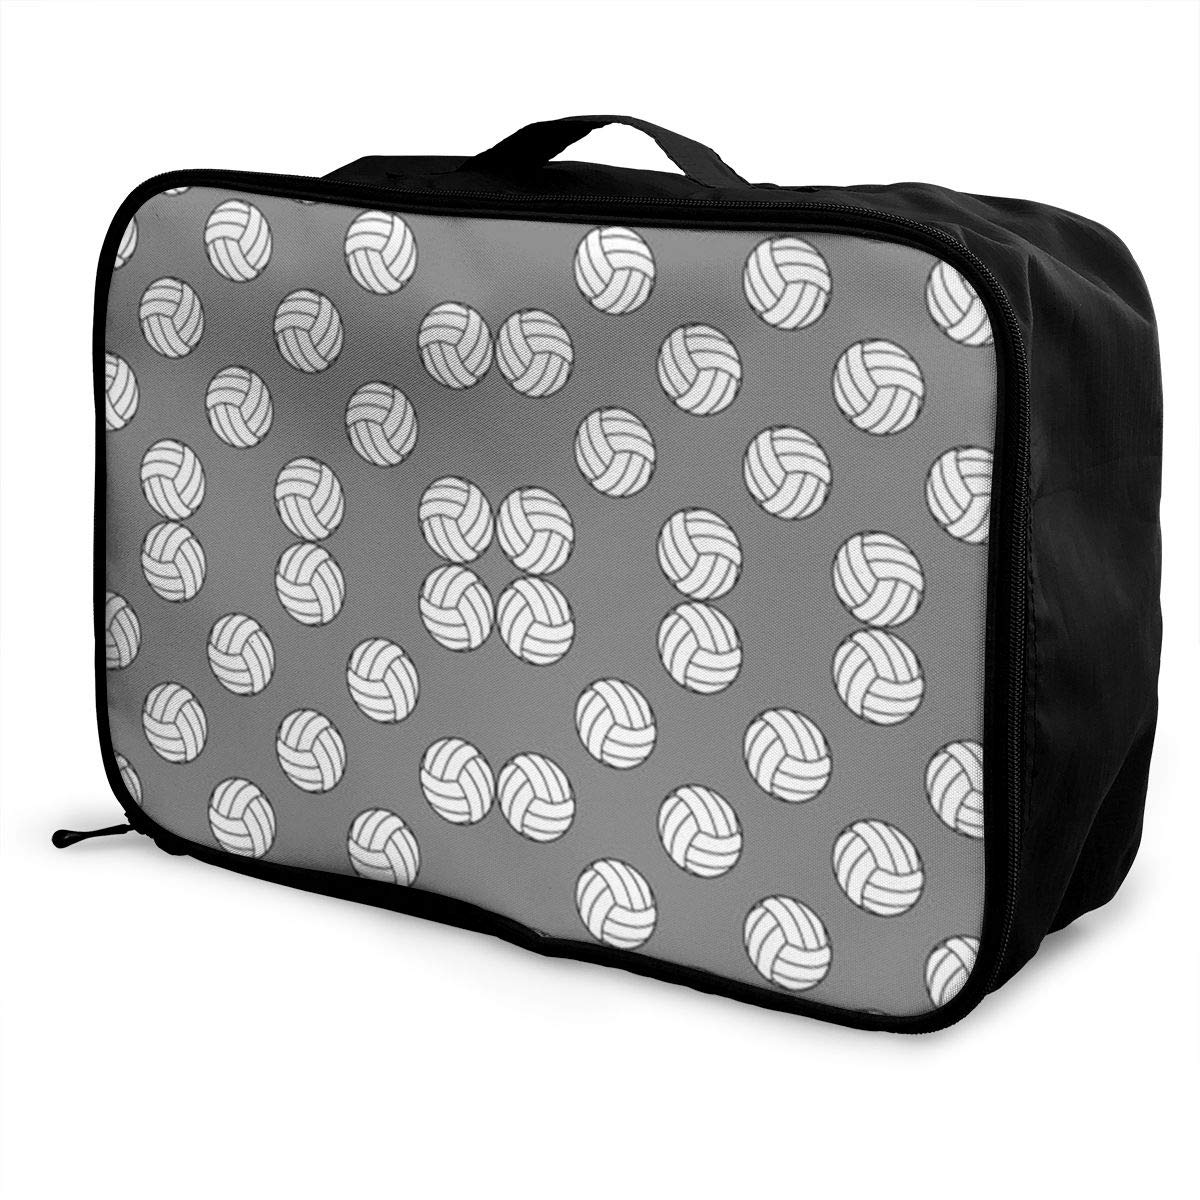 ADGAI One Inch Black and White Volleyballs On Medium Gray Canvas Travel Weekender Bag,Fashion Custom Lightweight Large Capacity Portable Luggage Bag,Suitcase Trolley Bag